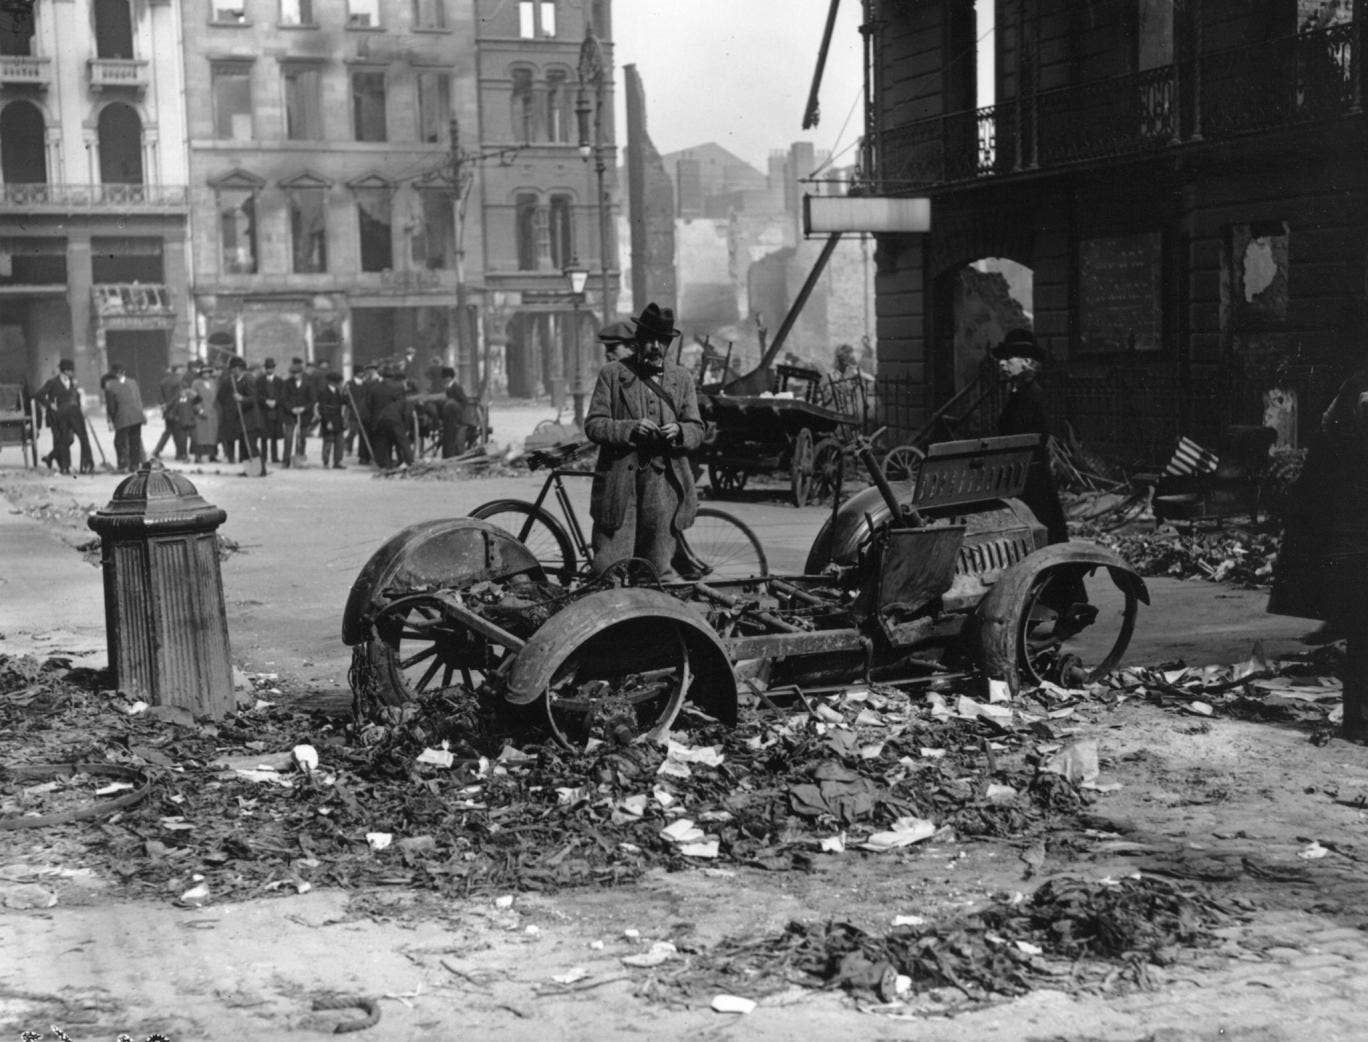 The aftermath of the Easter uprising with the ruins of a car in the foreground which has been used as a barricade